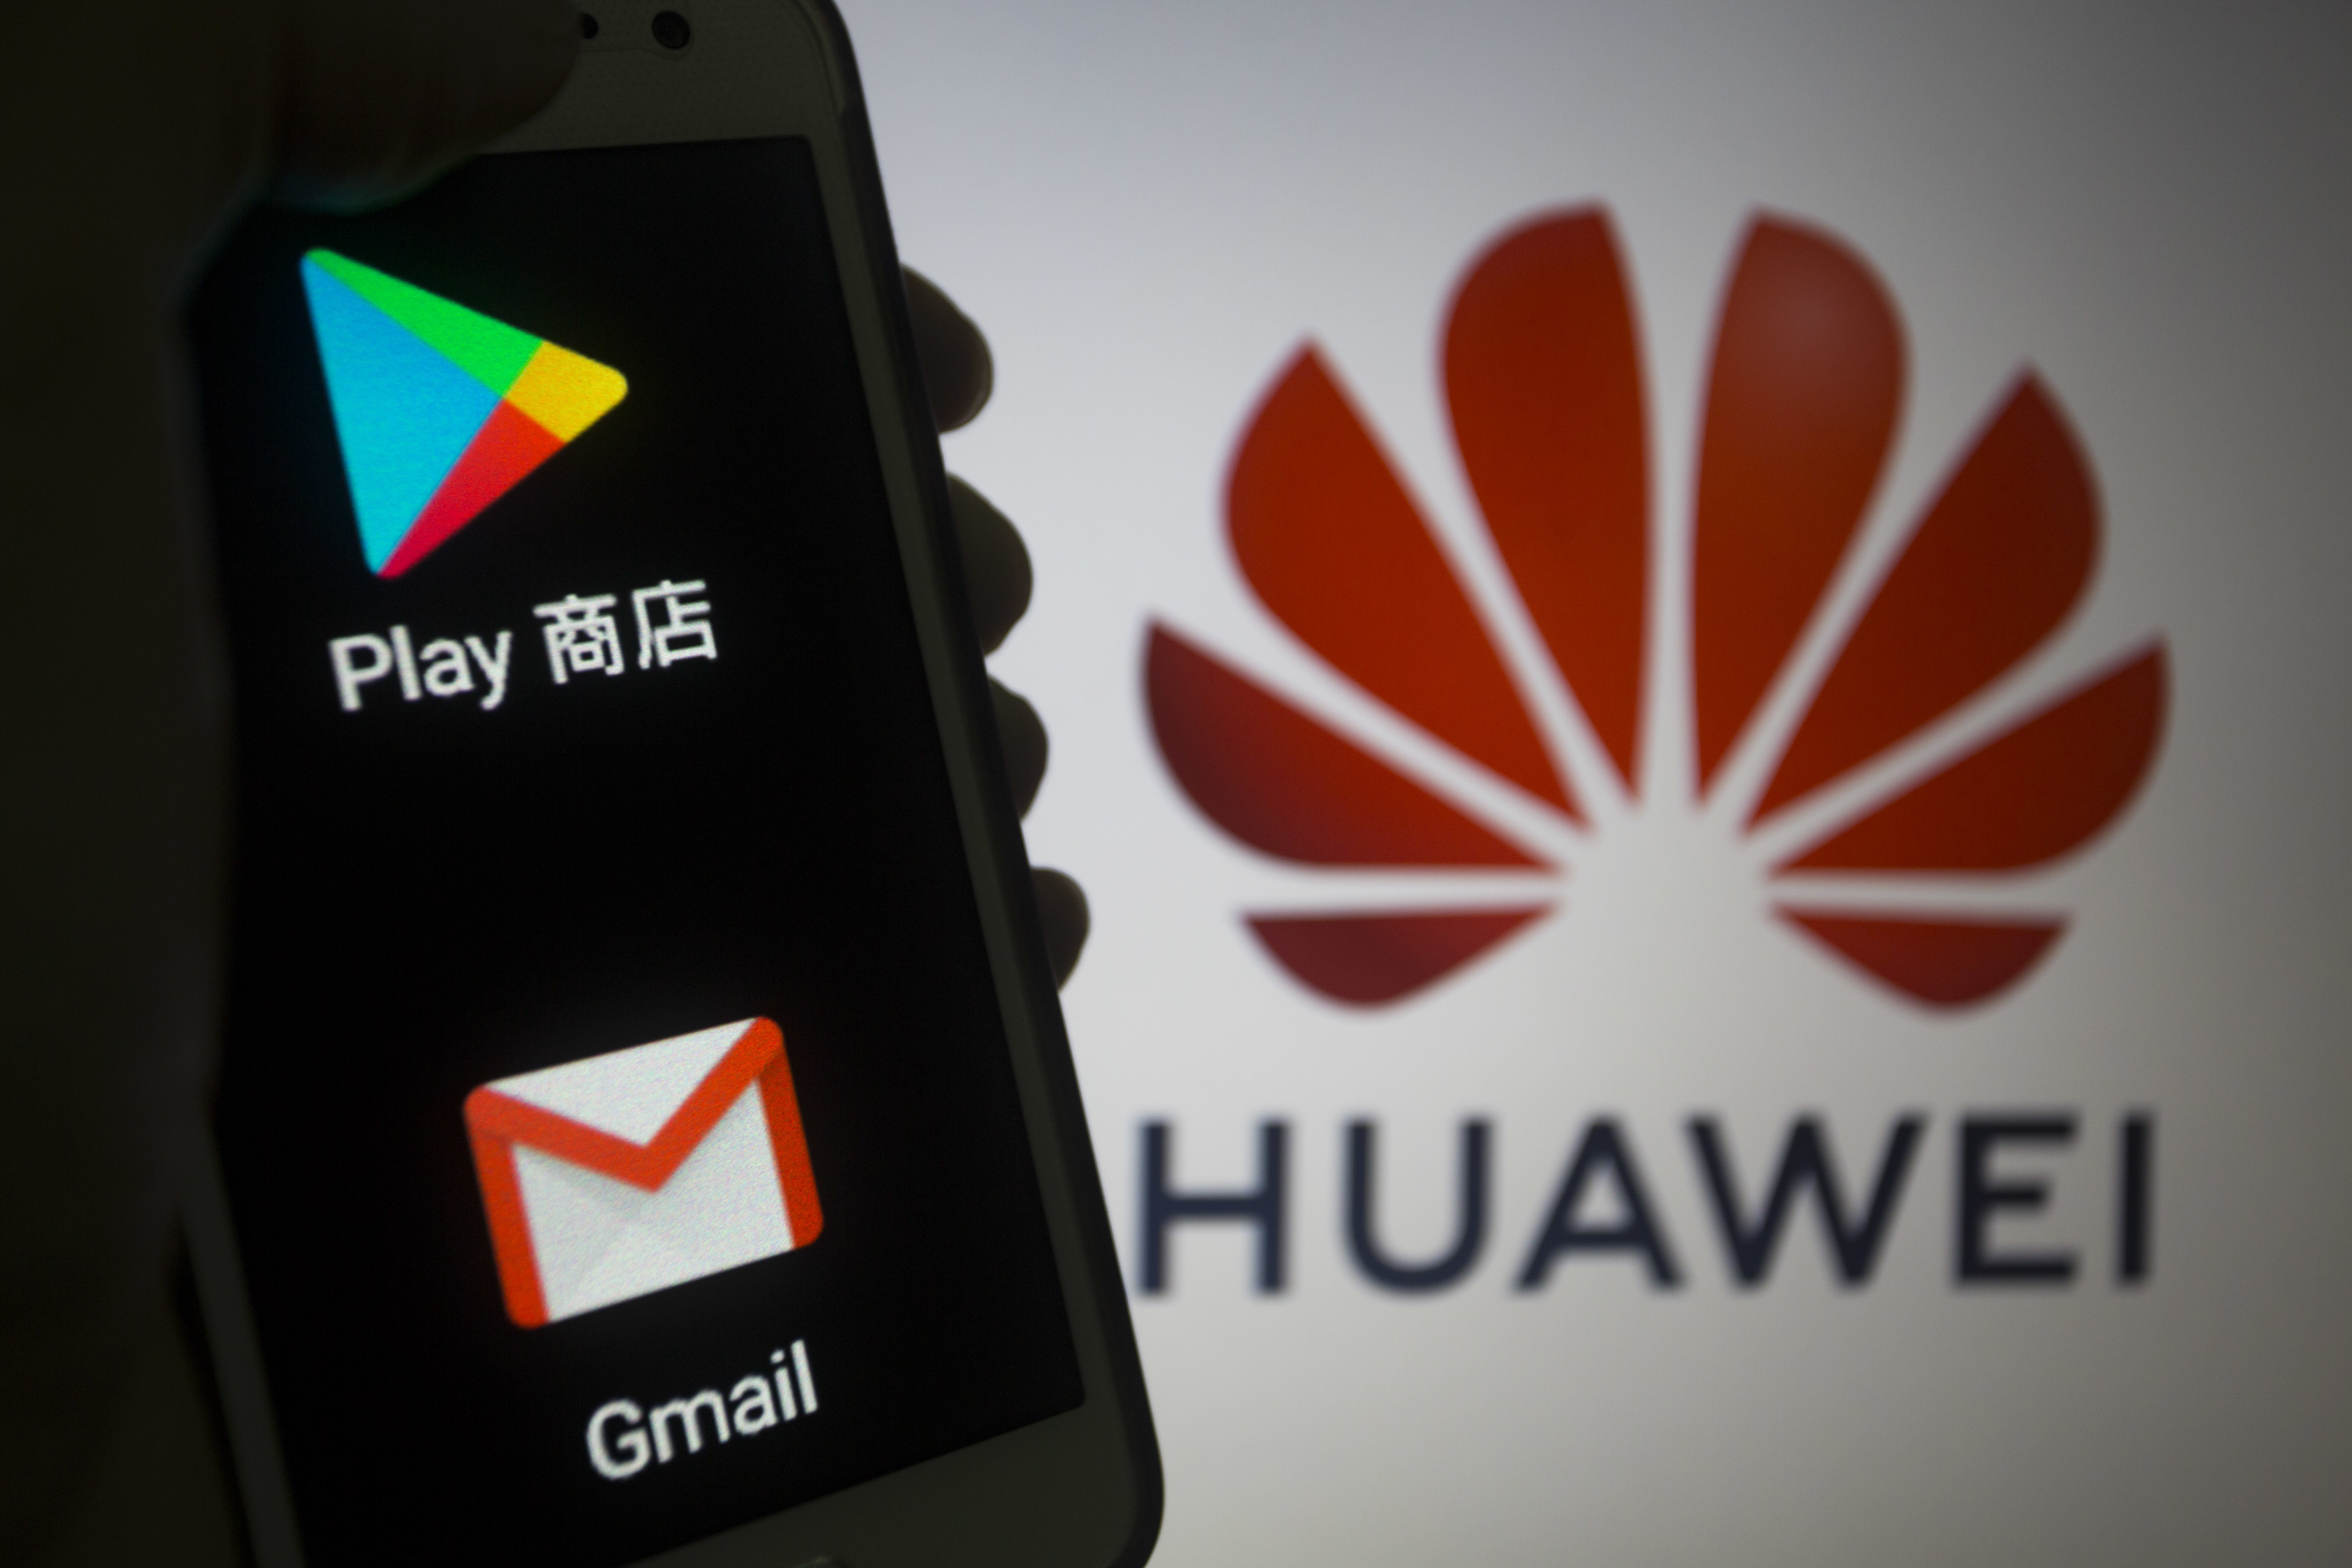 The Chinese firm has reportedly been banned from future updates by Google. Credit: PA